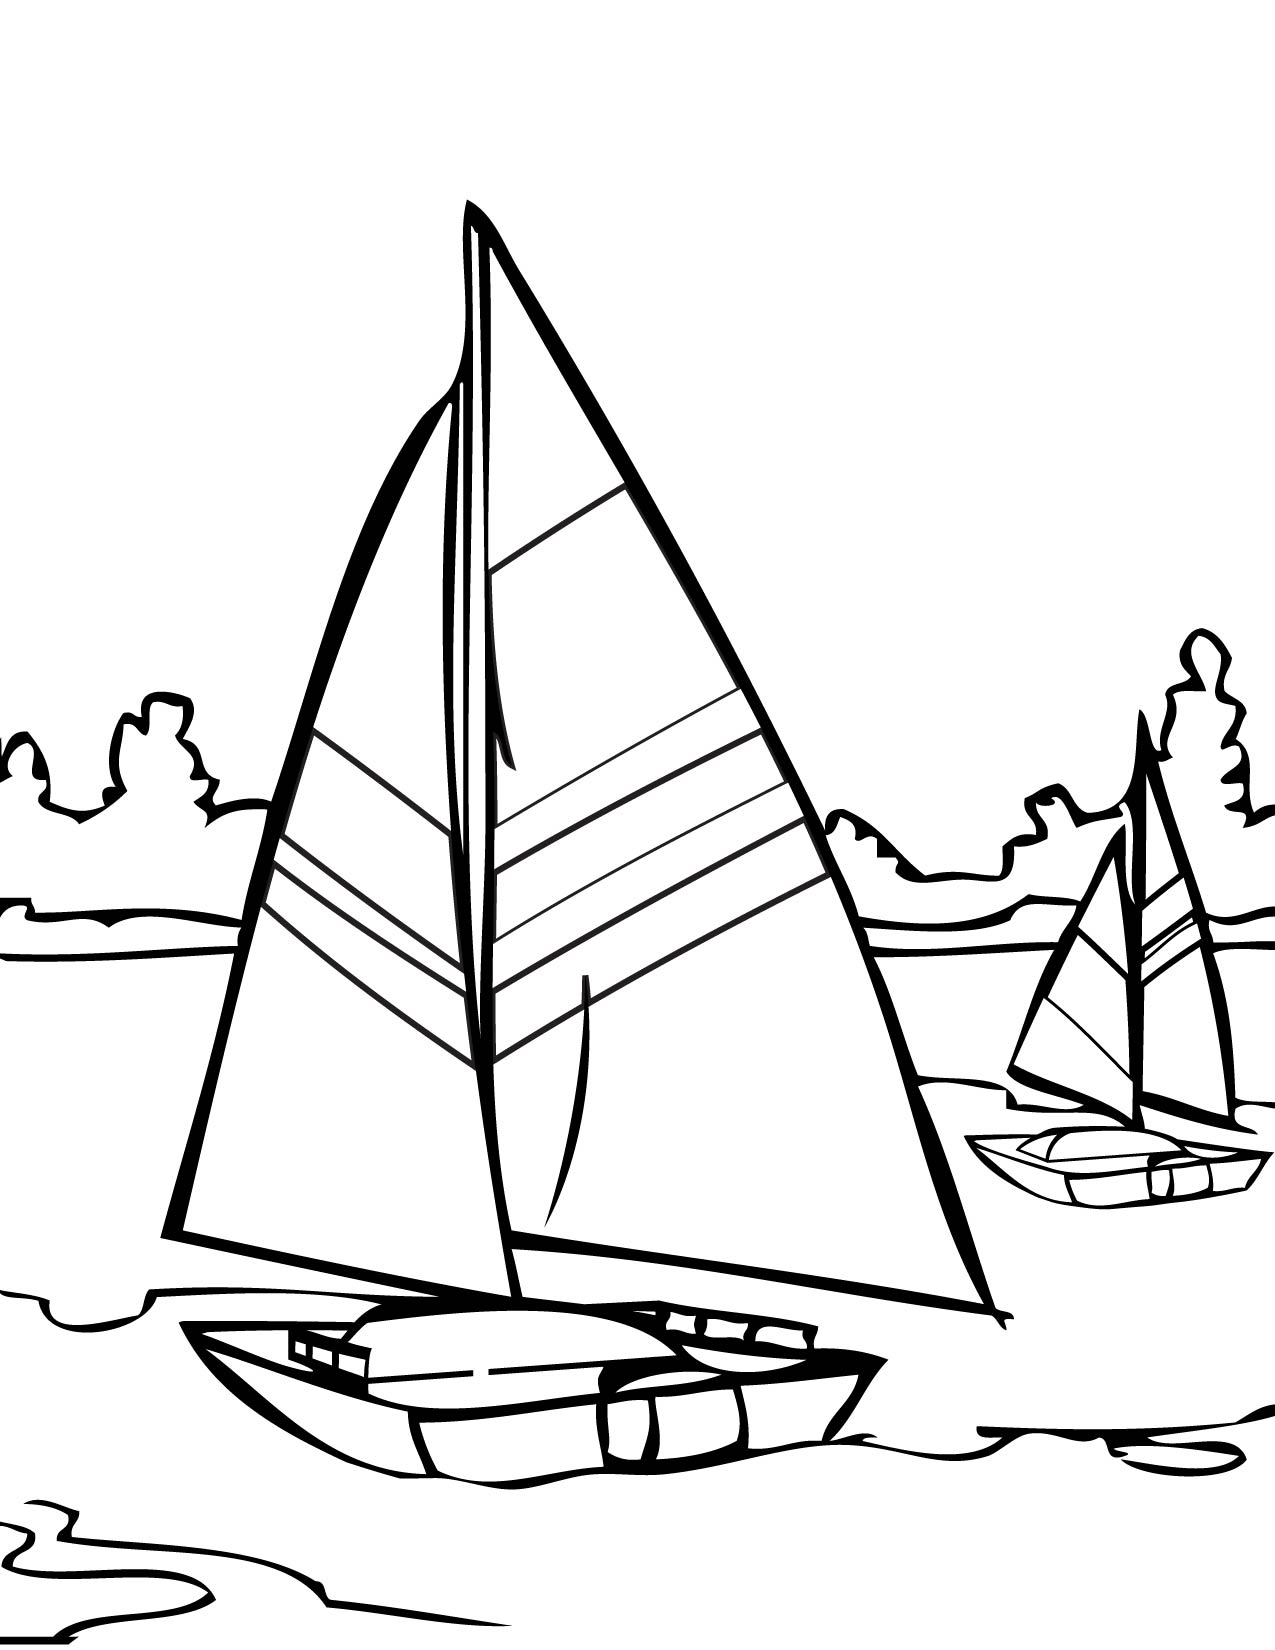 Coloring pages water - Sailing